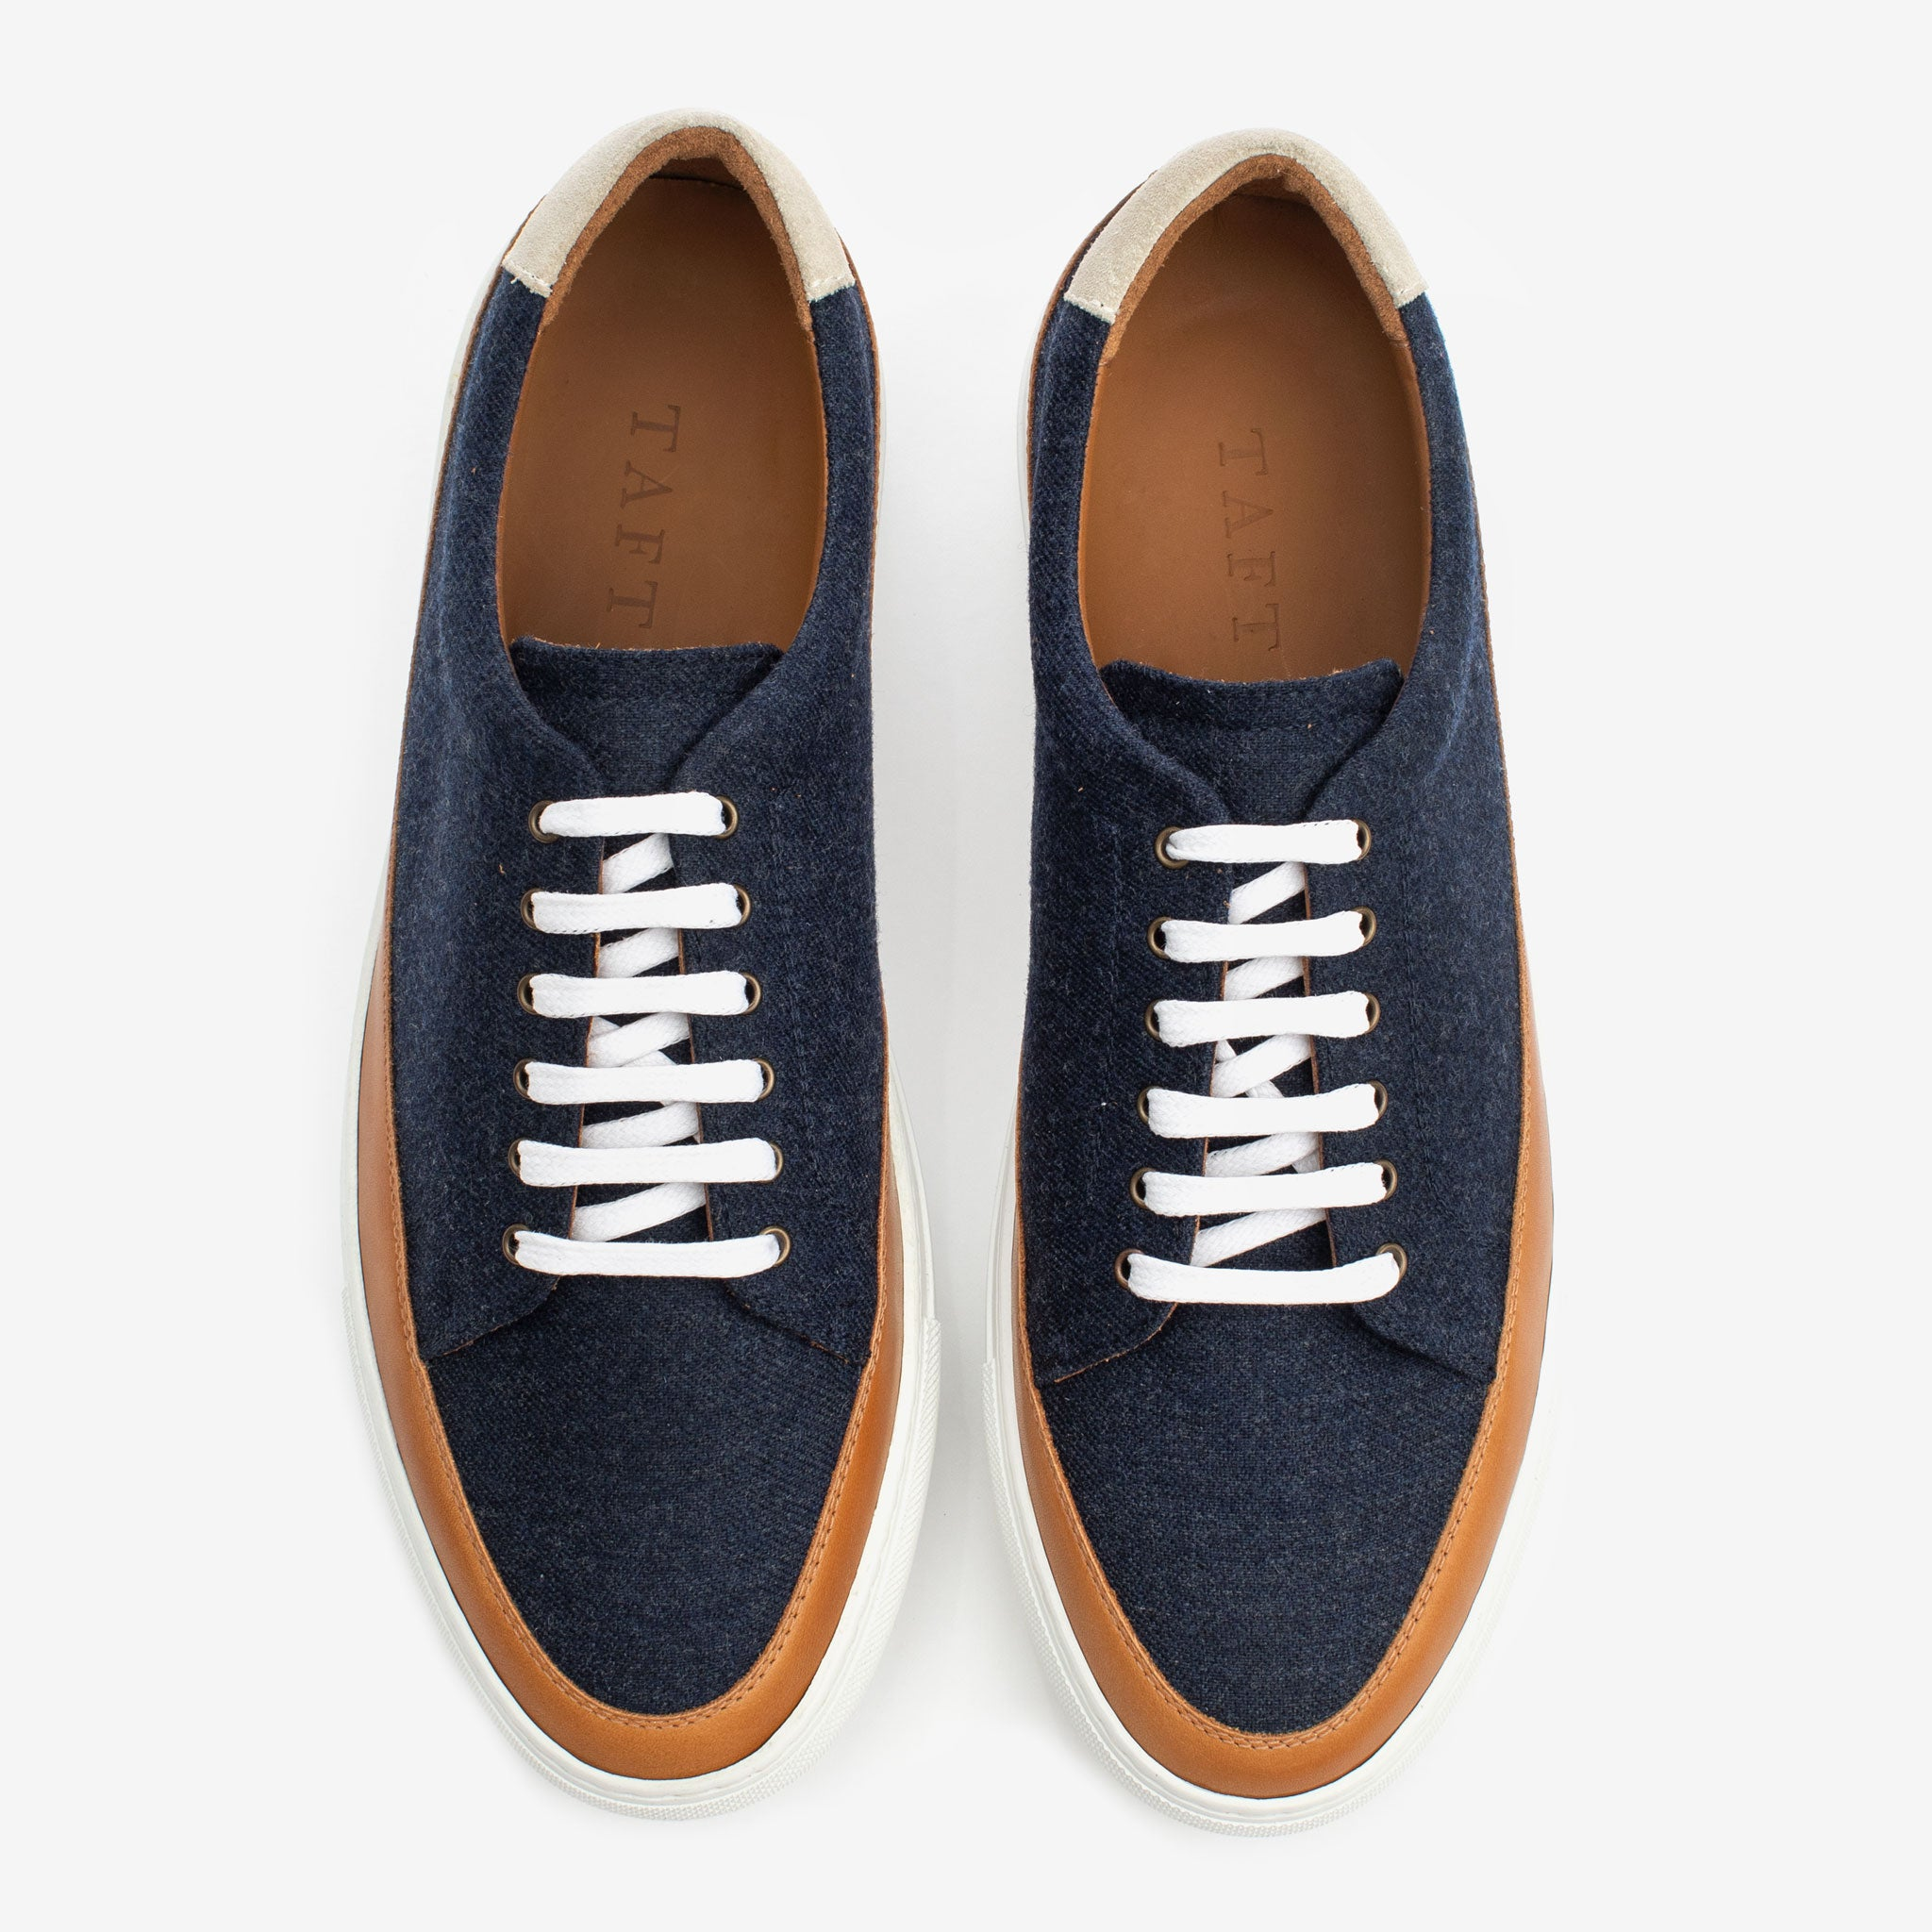 Fifth Ave Sneaker in Navy Overhead